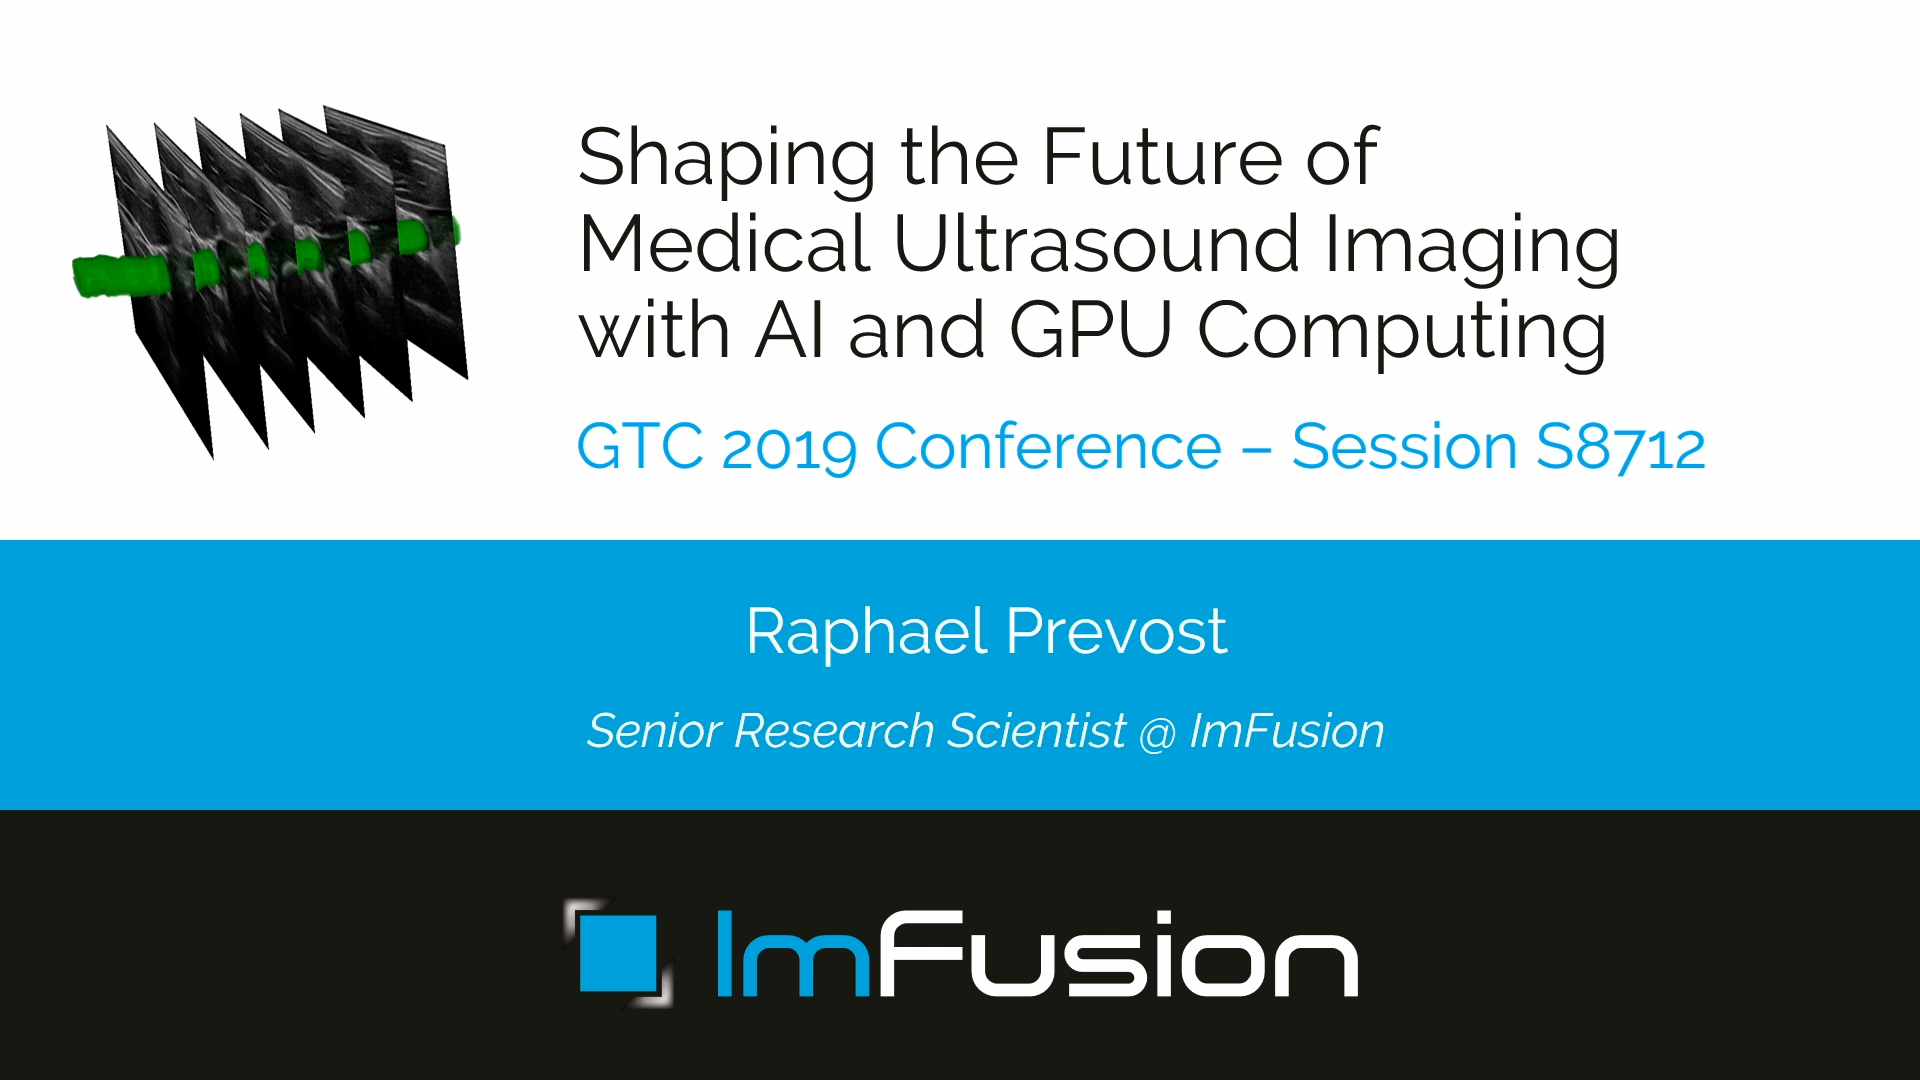 GTC Silicon Valley-2019: Shaping the Future of Medical